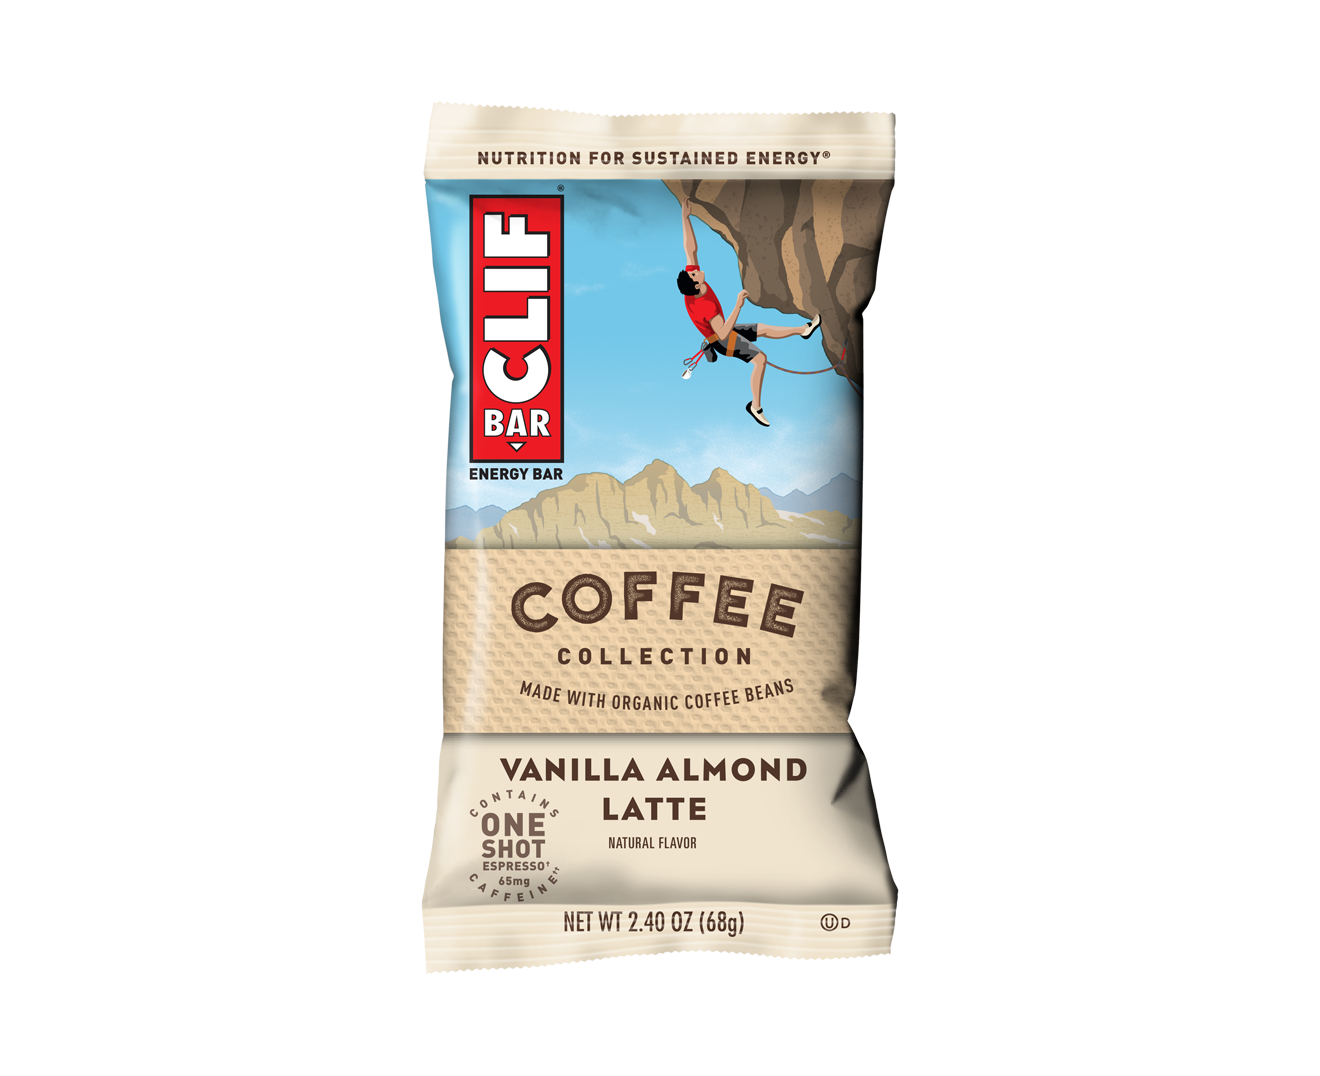 Coffee Collection: Vanilla Almond Latte Flavor packaging